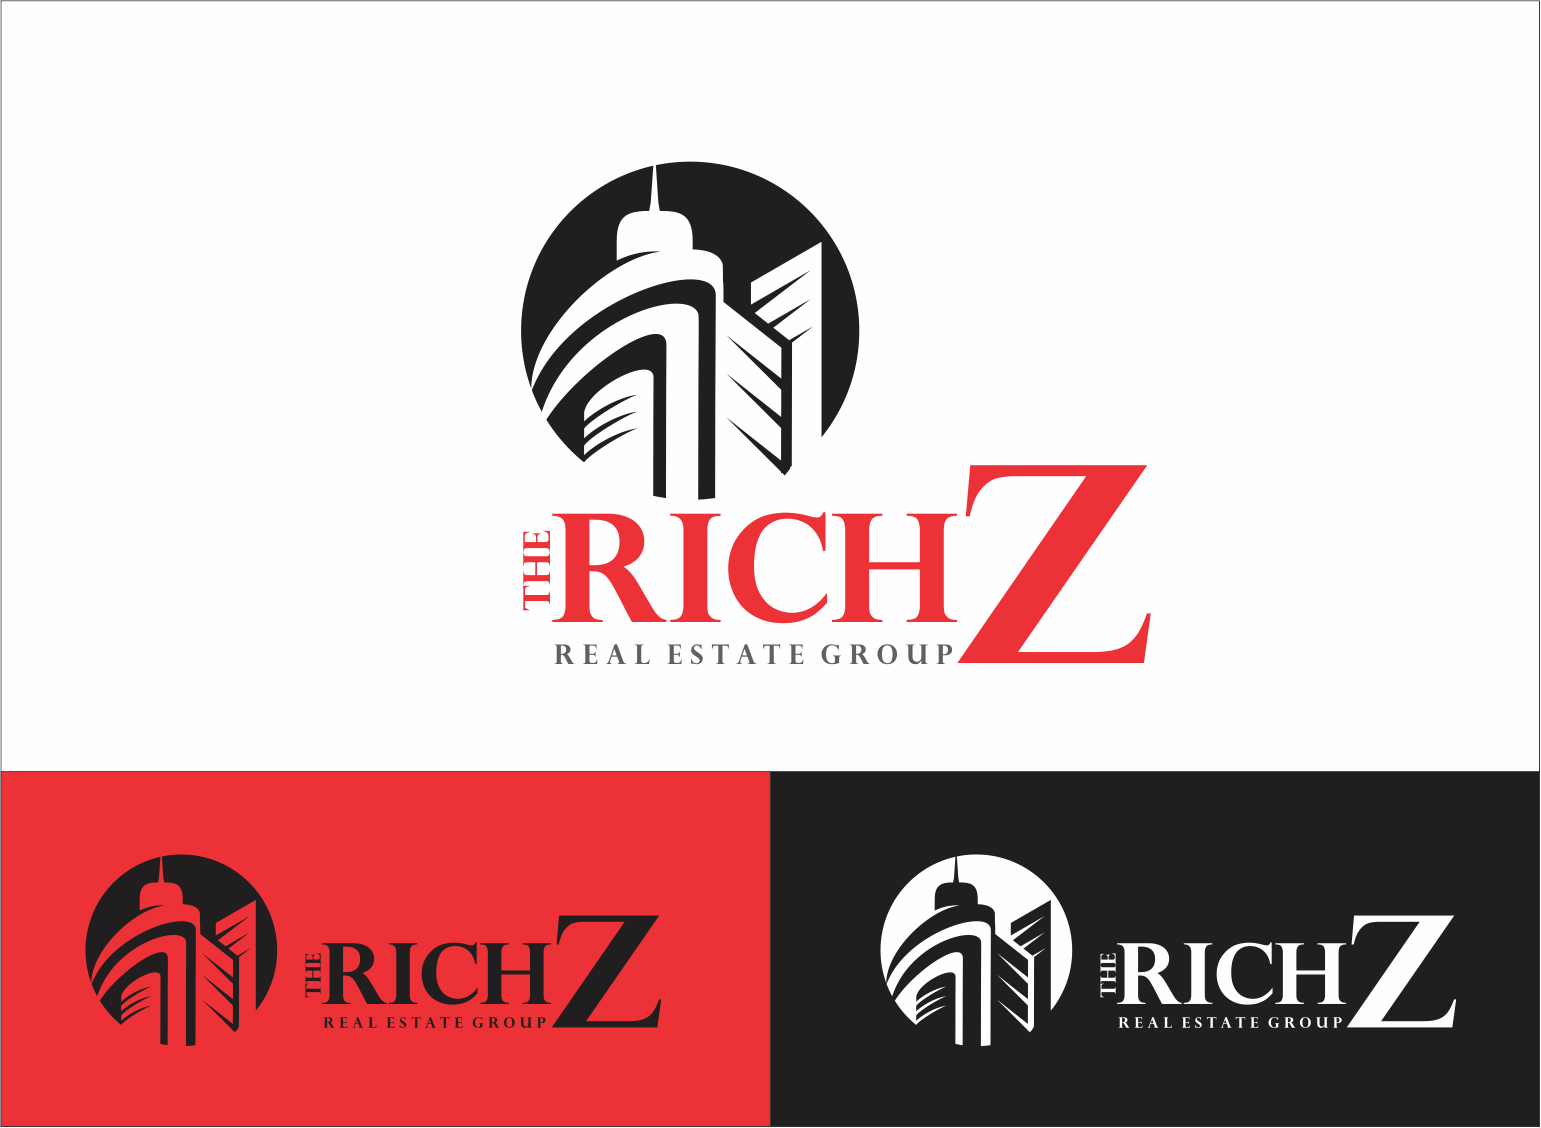 Logo Design by Armada Jamaluddin - Entry No. 335 in the Logo Design Contest The Rich Z. Real Estate Group Logo Design.